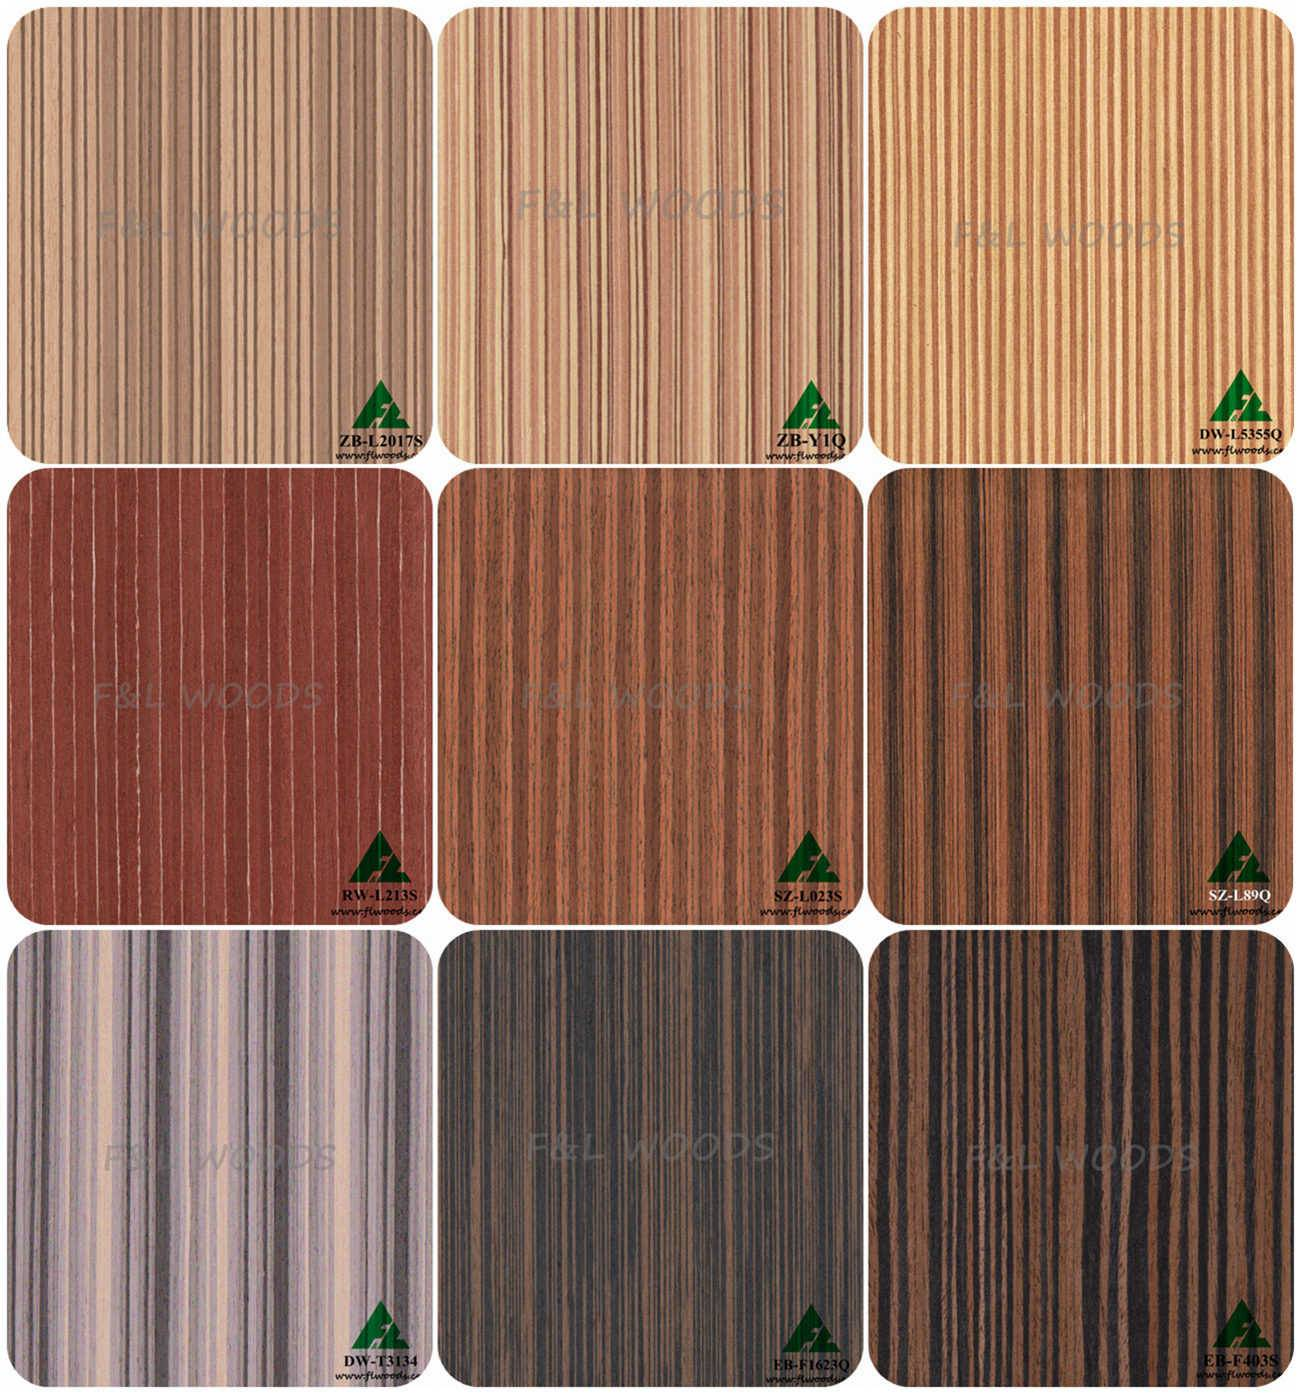 engineered wood veneer,reconstituted veneer,recomposed veneer